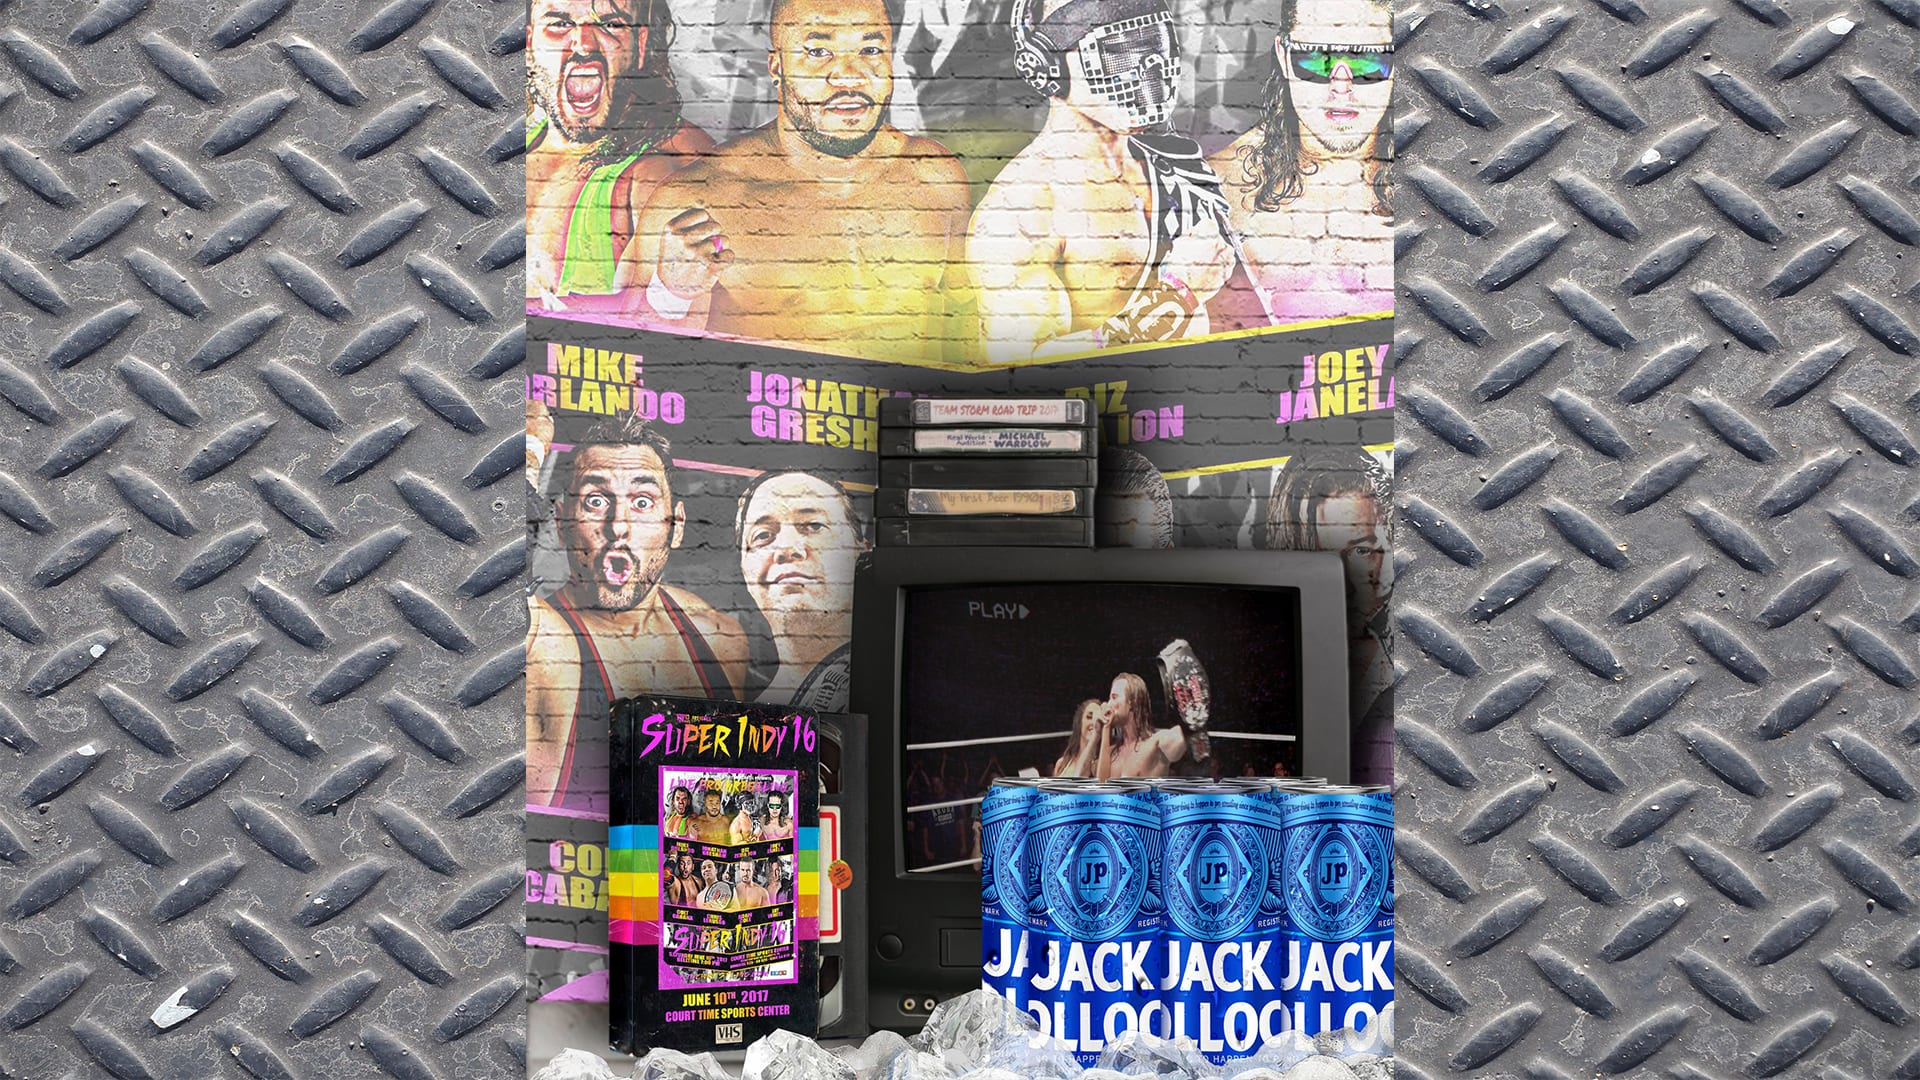 Six Pack with Jack: Super Indy 16